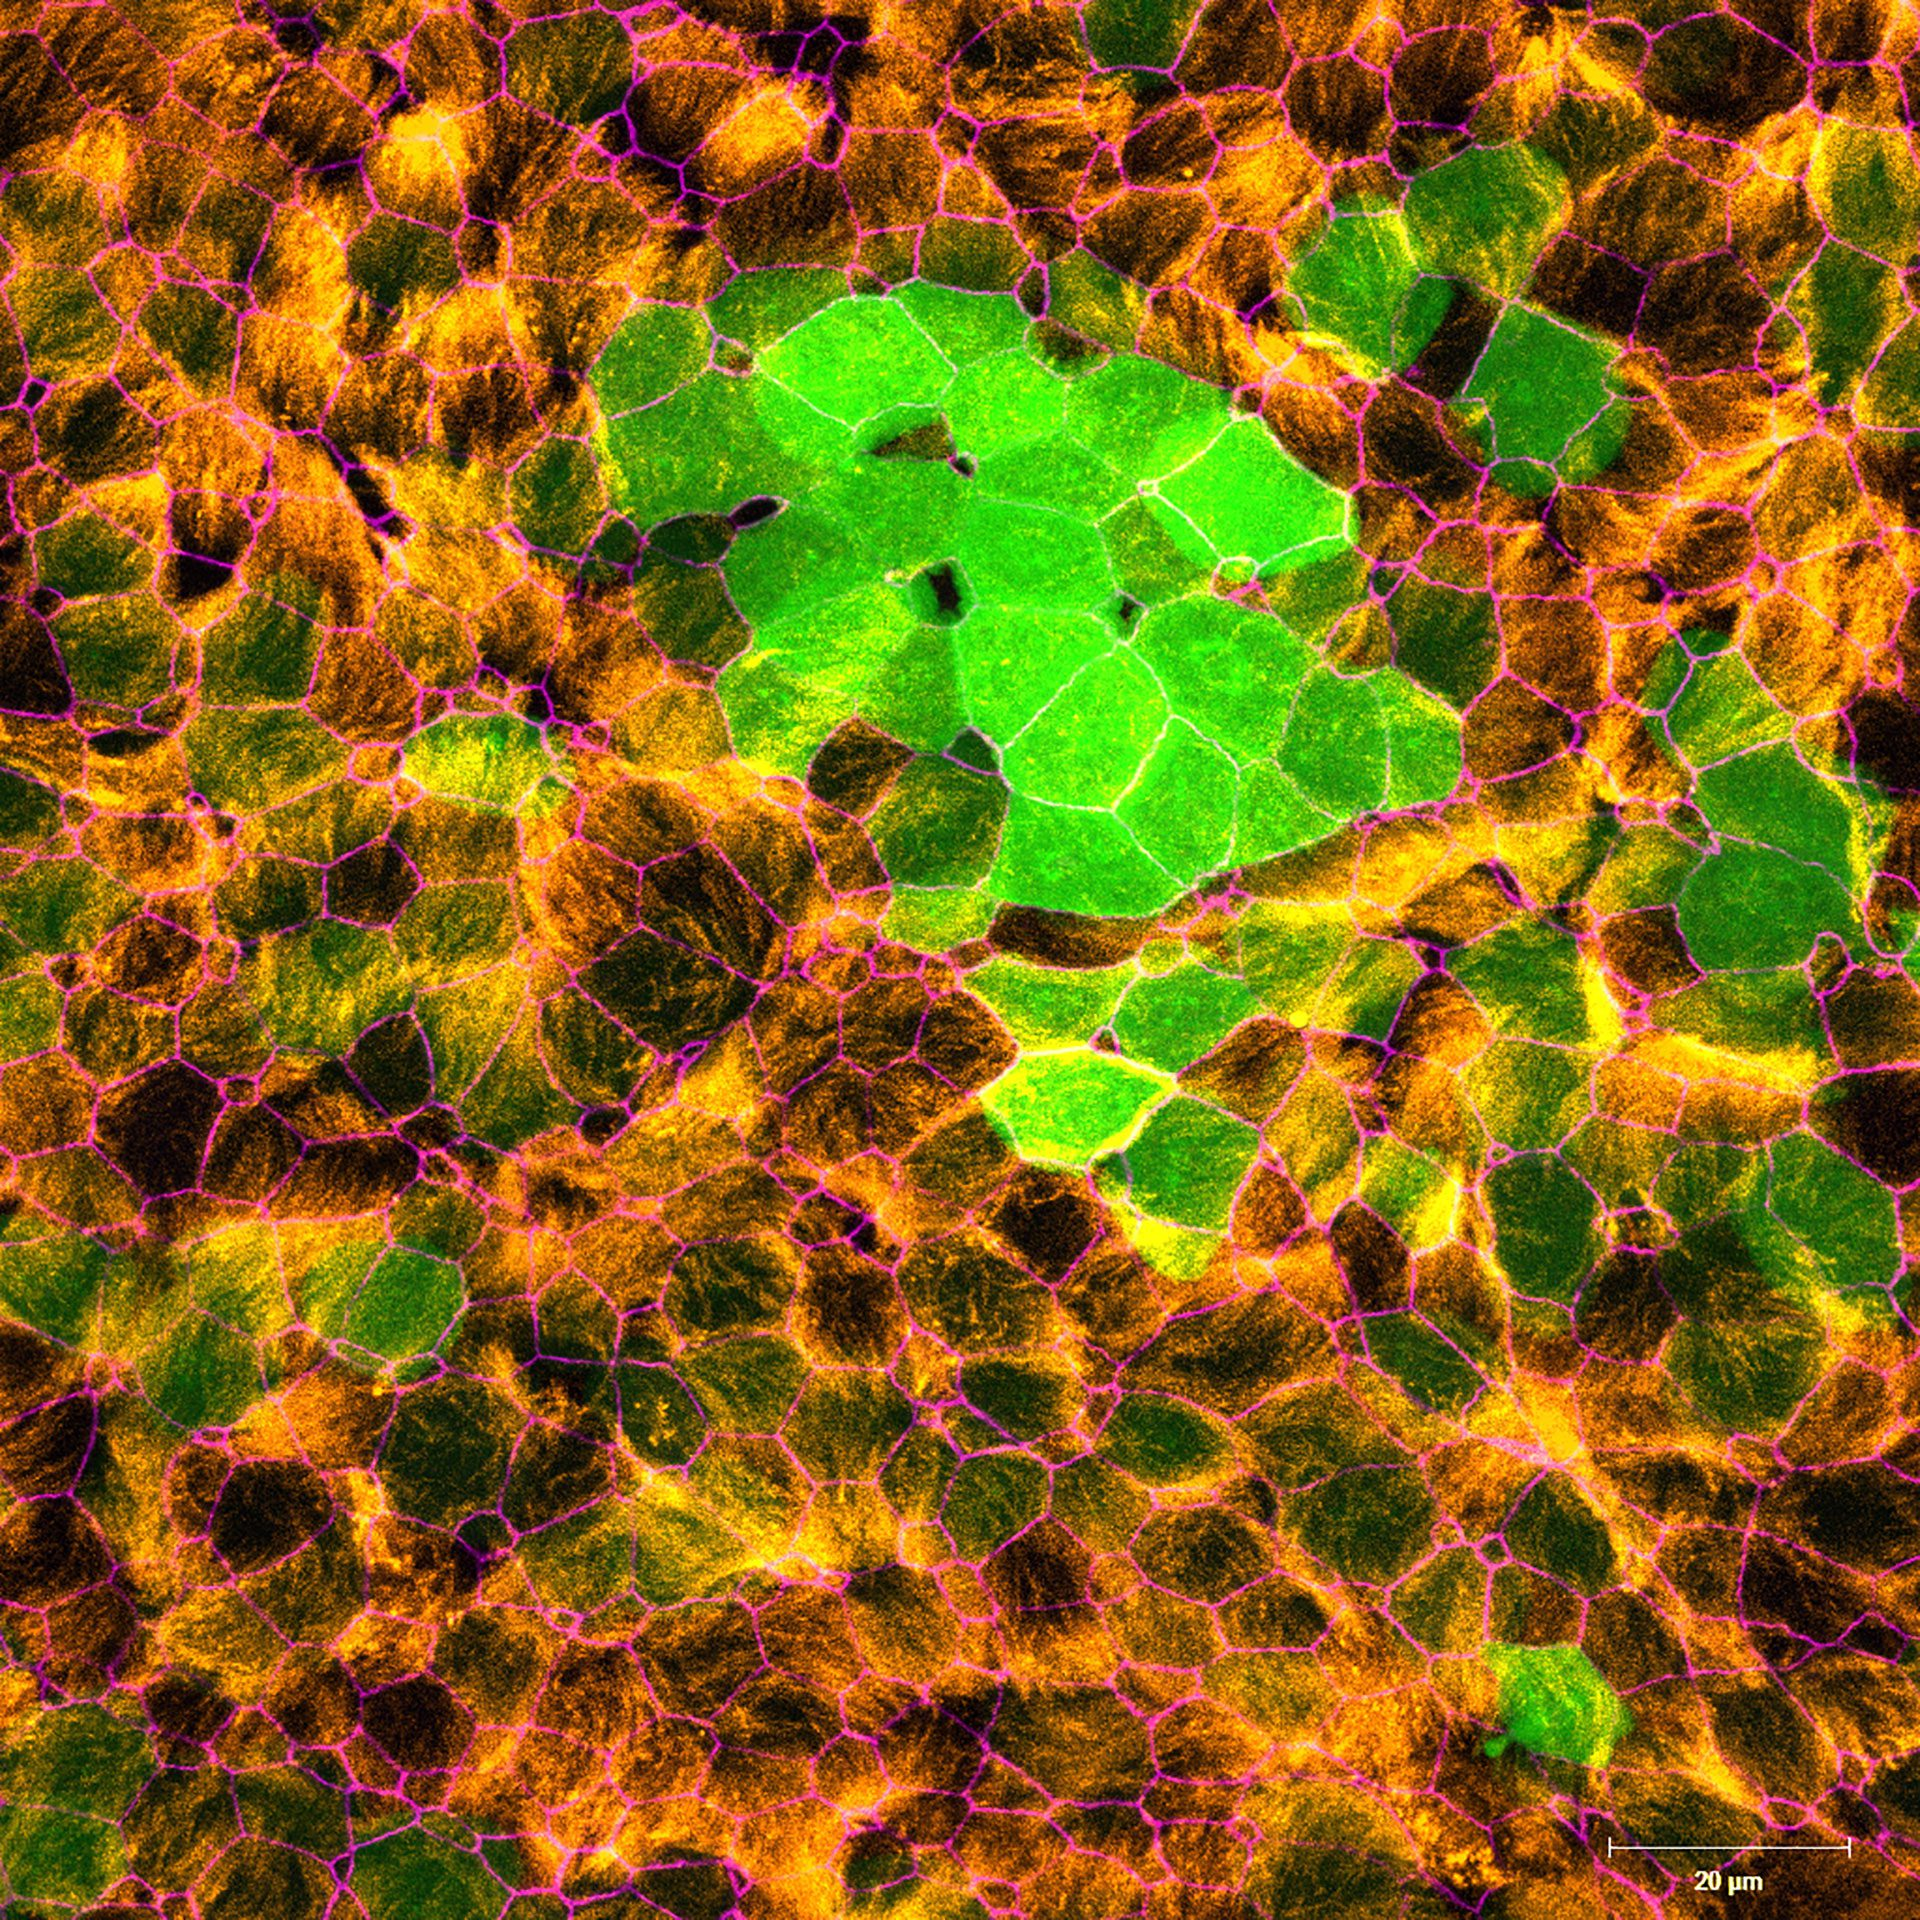 Well-differentiated small airway epithelial cells infected with recombinant human respiratory syncytial virus expressing enhanced green fluorescent protein at 3 days post-infection. Green, recombinant human respiratory syncytial virus; orange, acetylated α-tubulin (cilia)